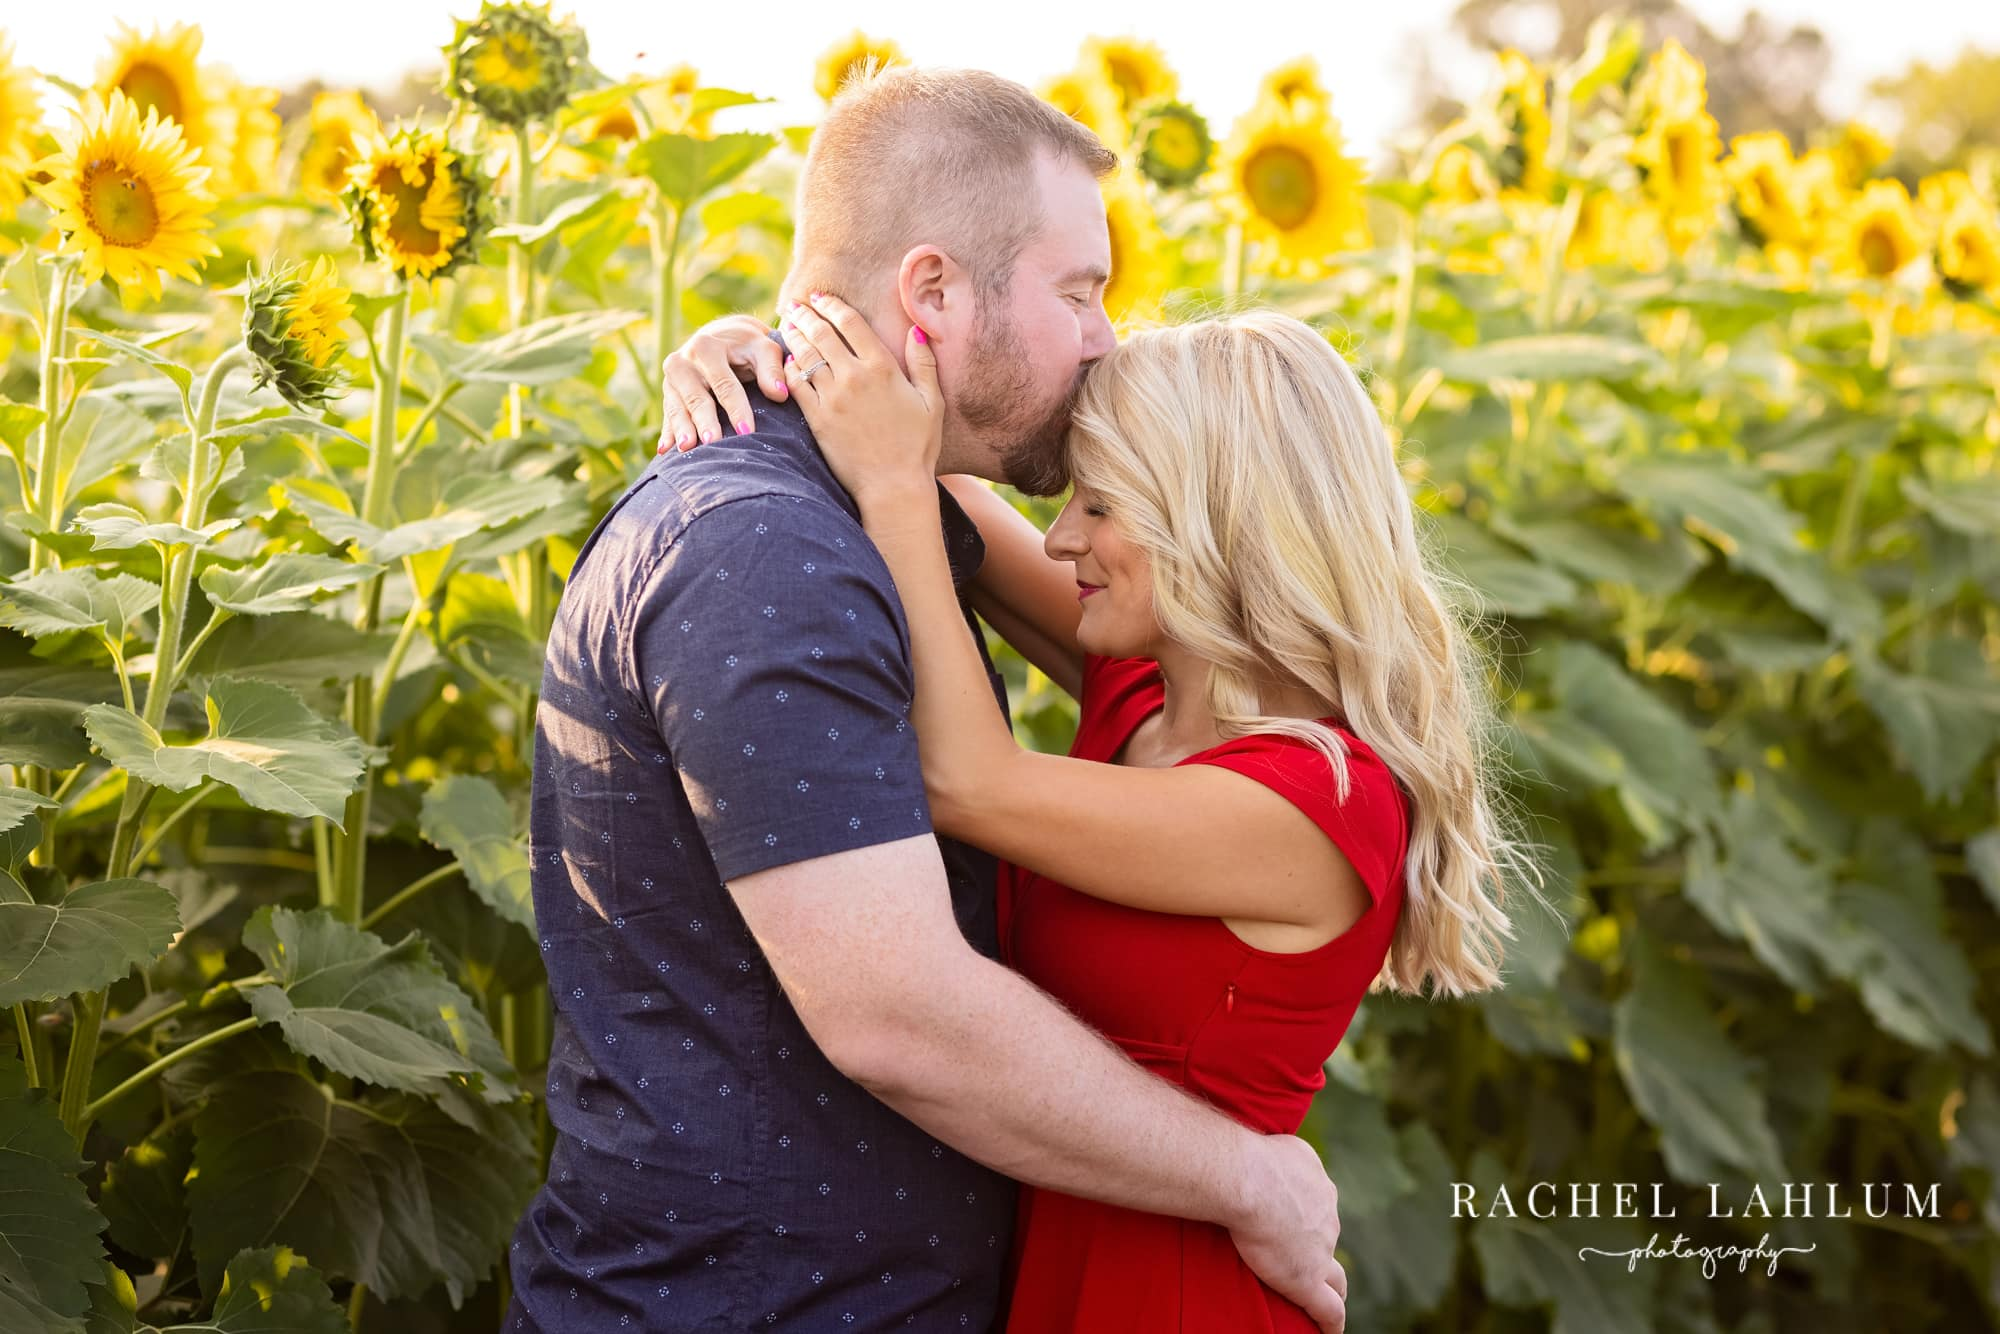 Laura and Kelly share a kiss among tall sunflower stalks in Isanti, Minnesota.